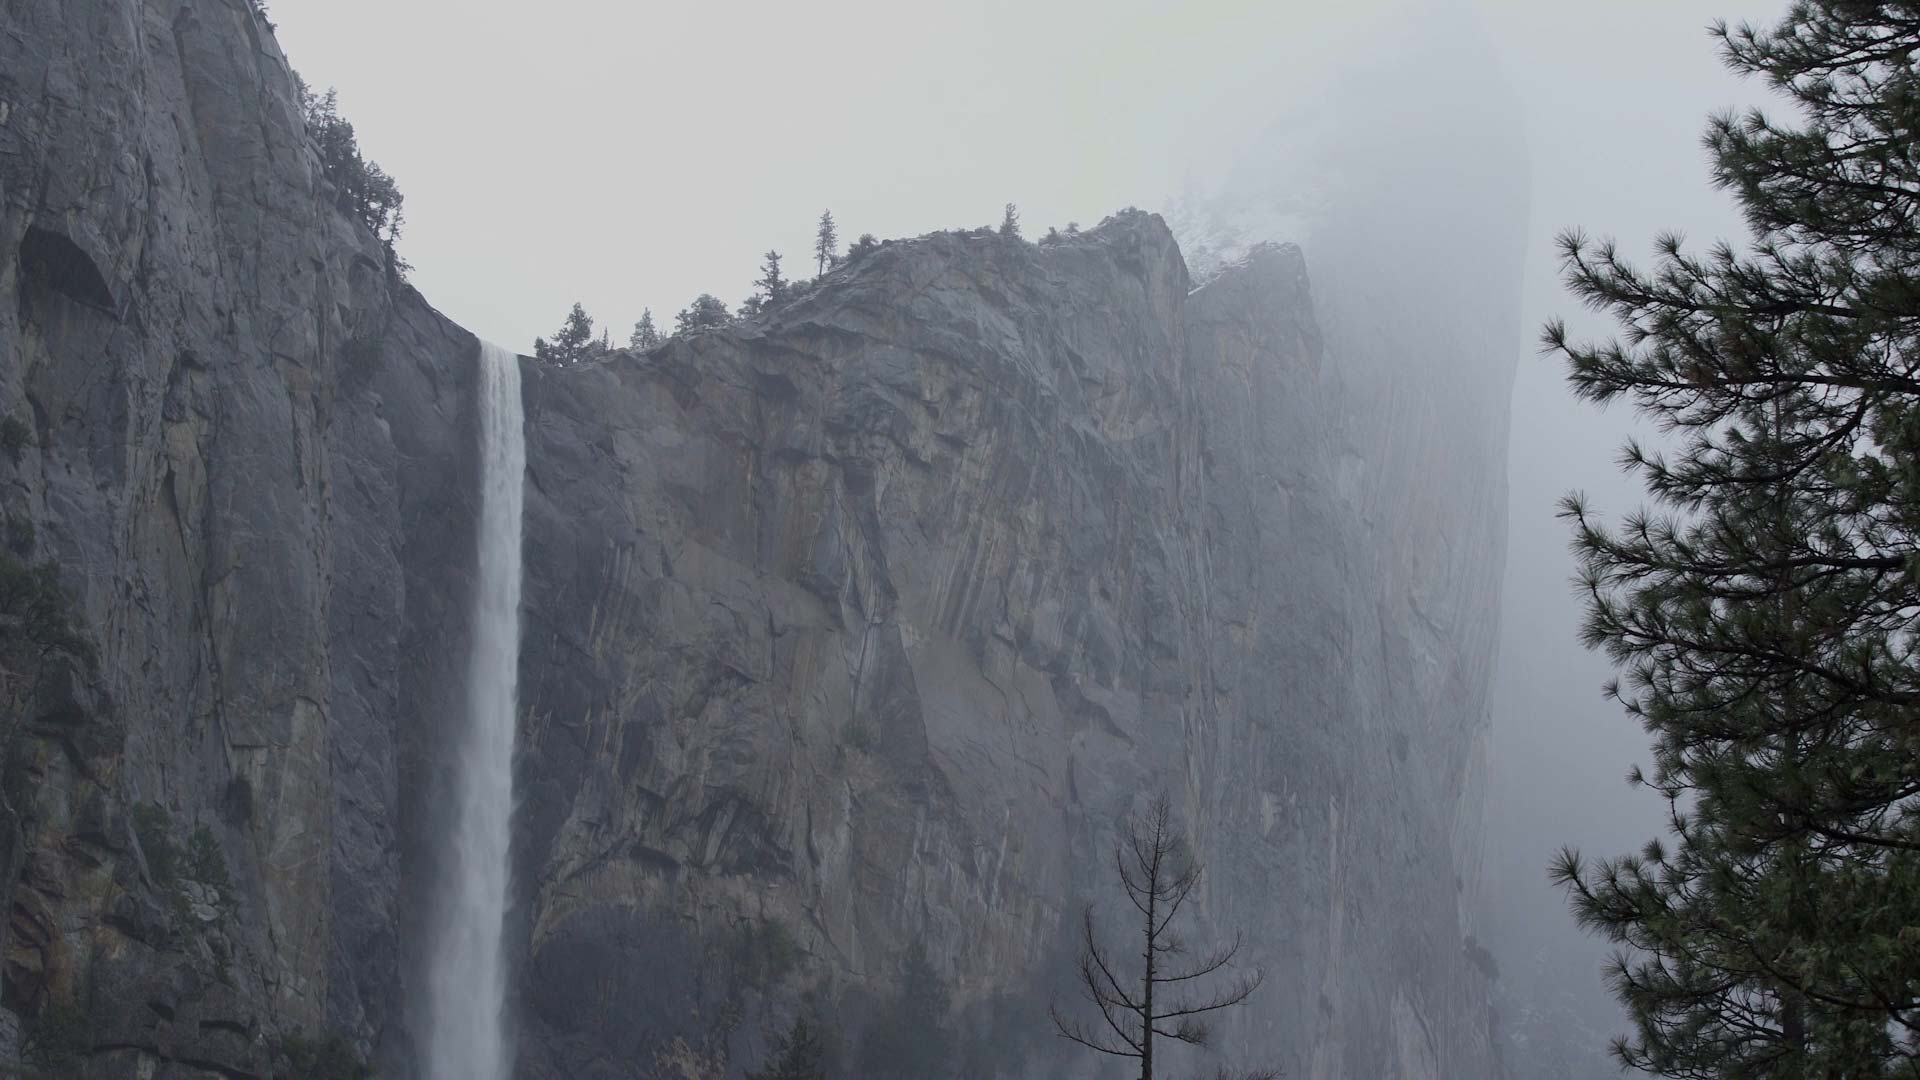 A video still from a recent video project - this image shows a waterfall at yosemite national park